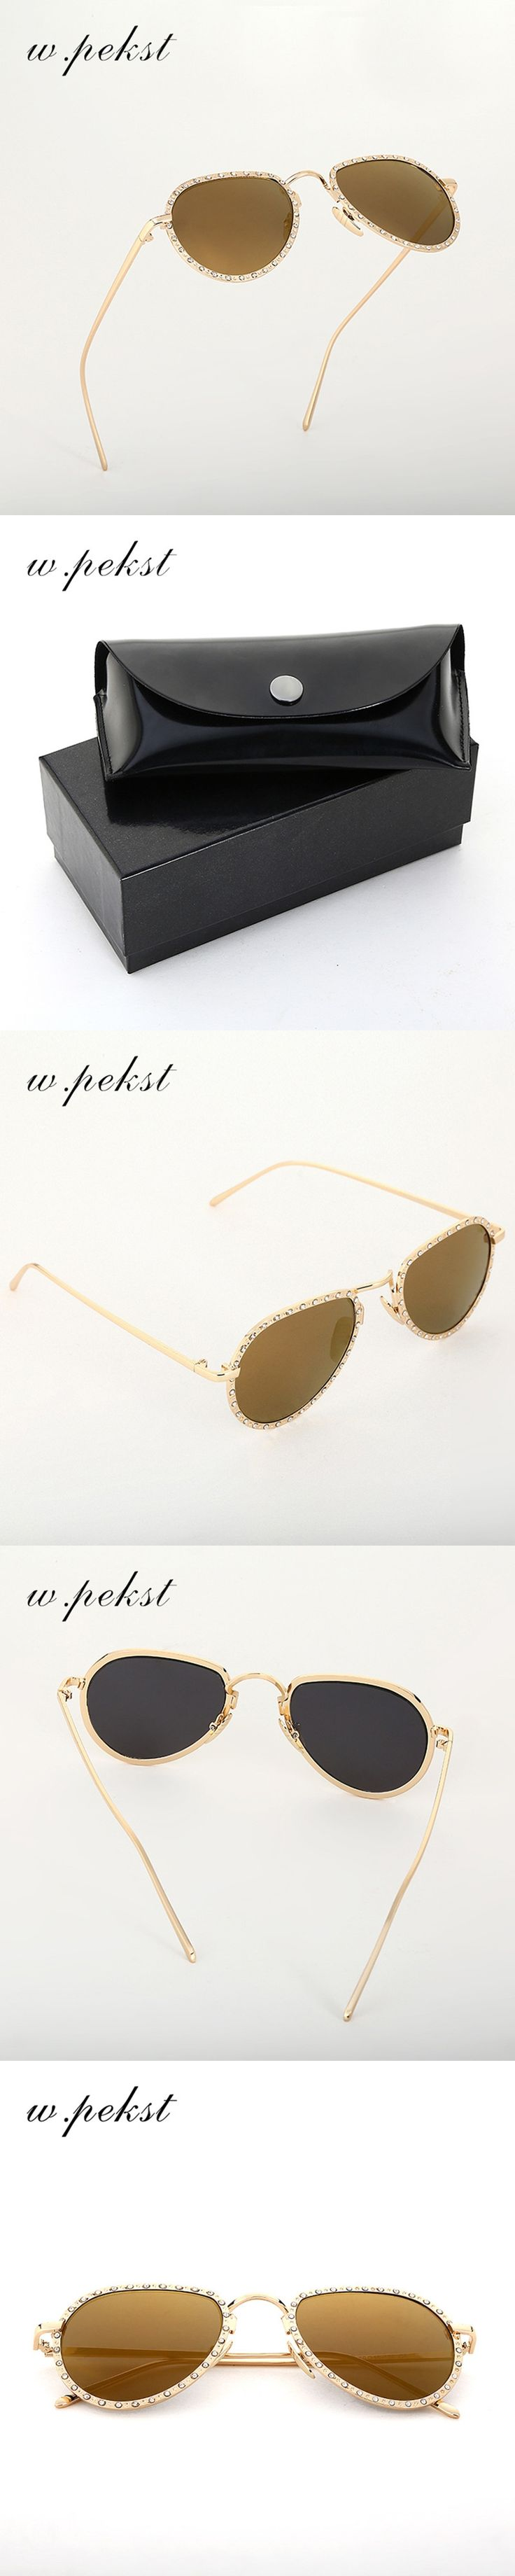 w.pekst Women Sunglasses Polarized Crystal Classic Oval Design Eyewear Anti UV400 Protection Casual Outfits Colorful Style